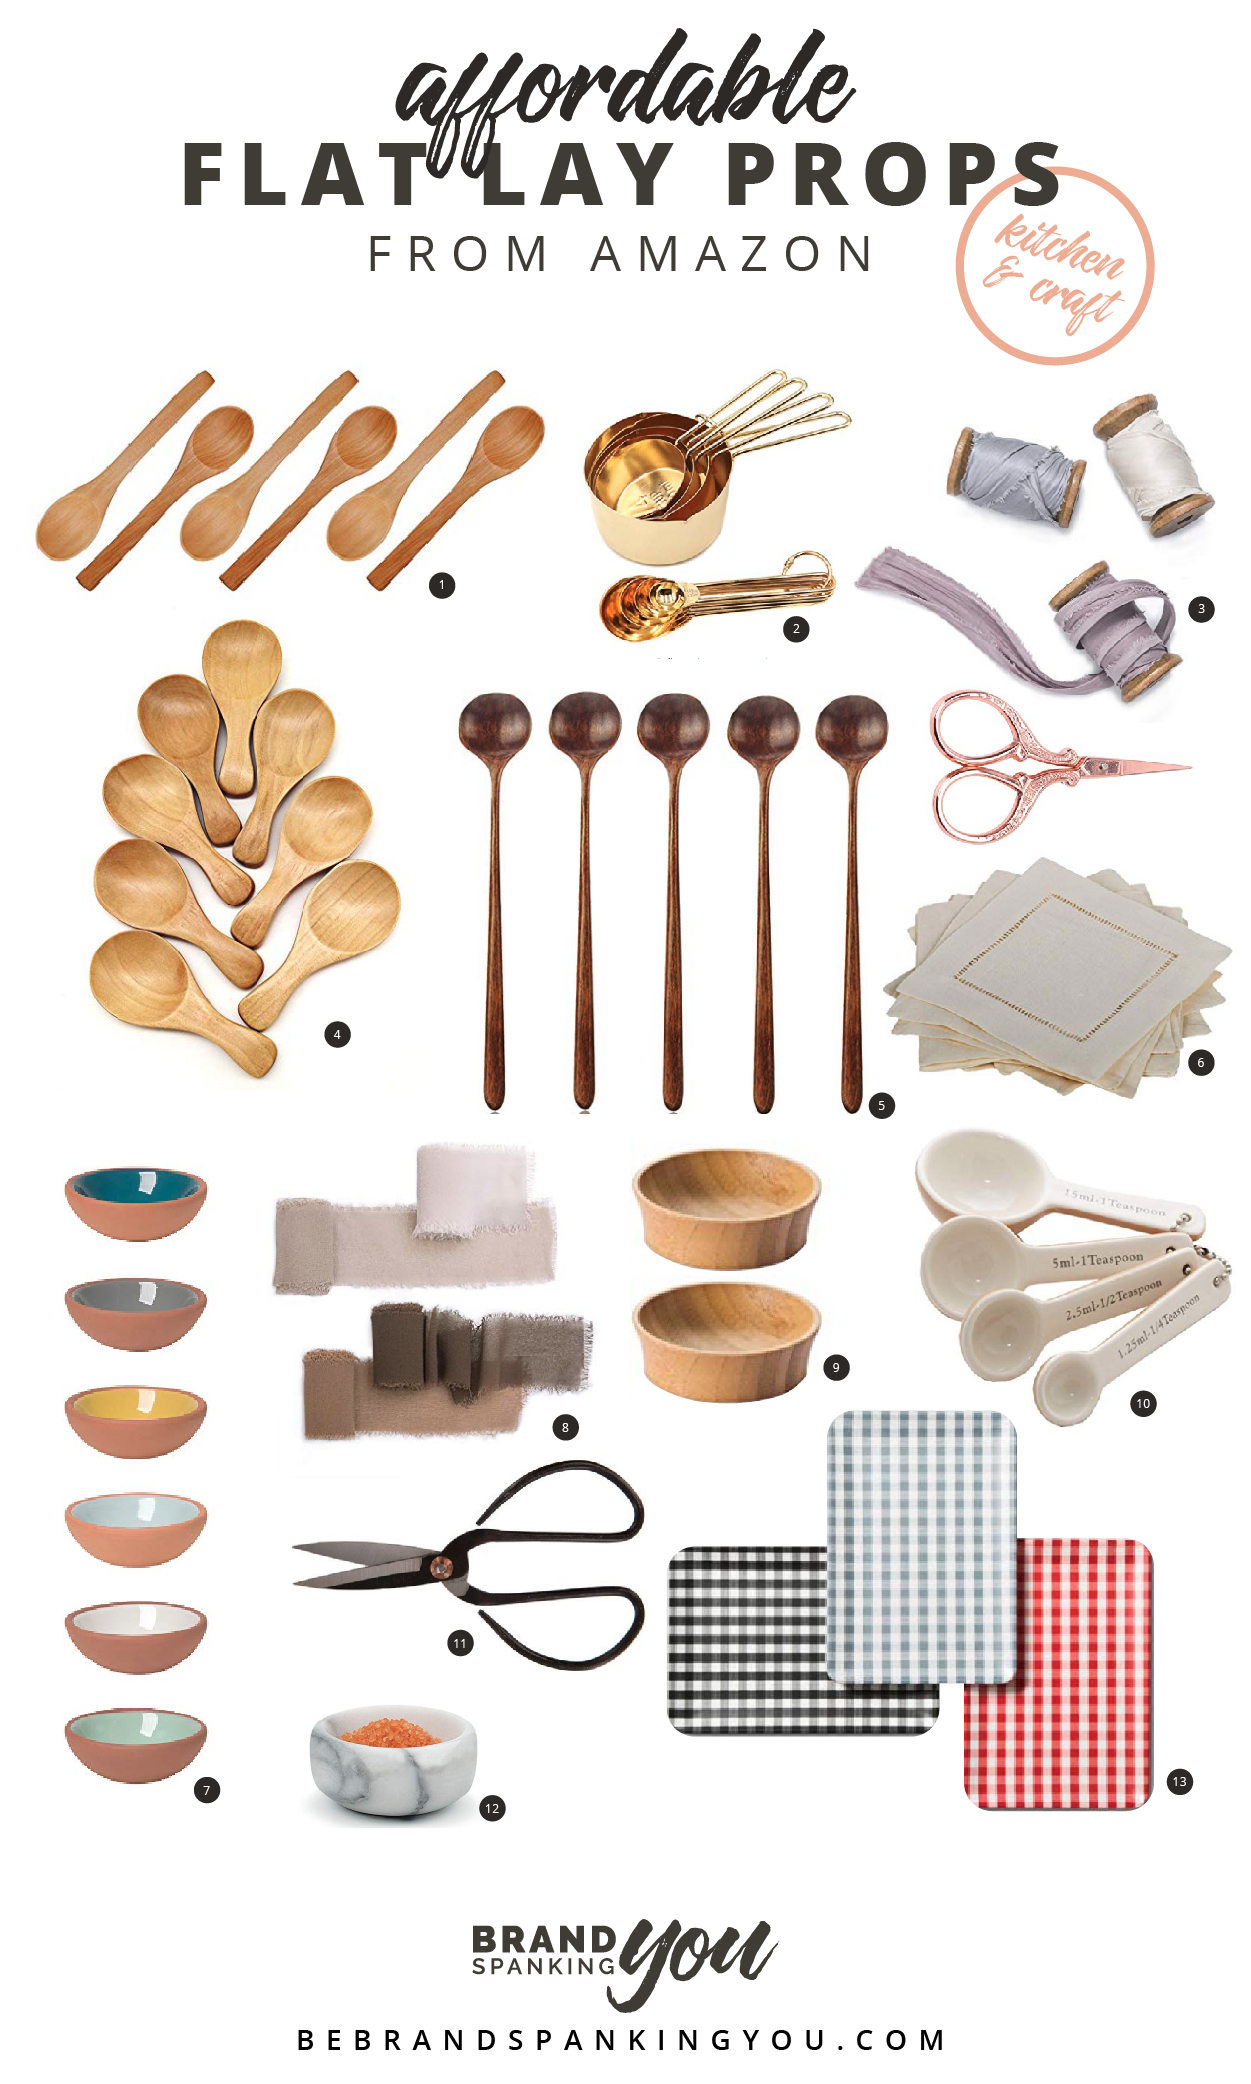 Good flat lay props are hard to find sometimes! Here's a round-up of 13 affordable props for kitchen and crafting that you can find on Amazon.